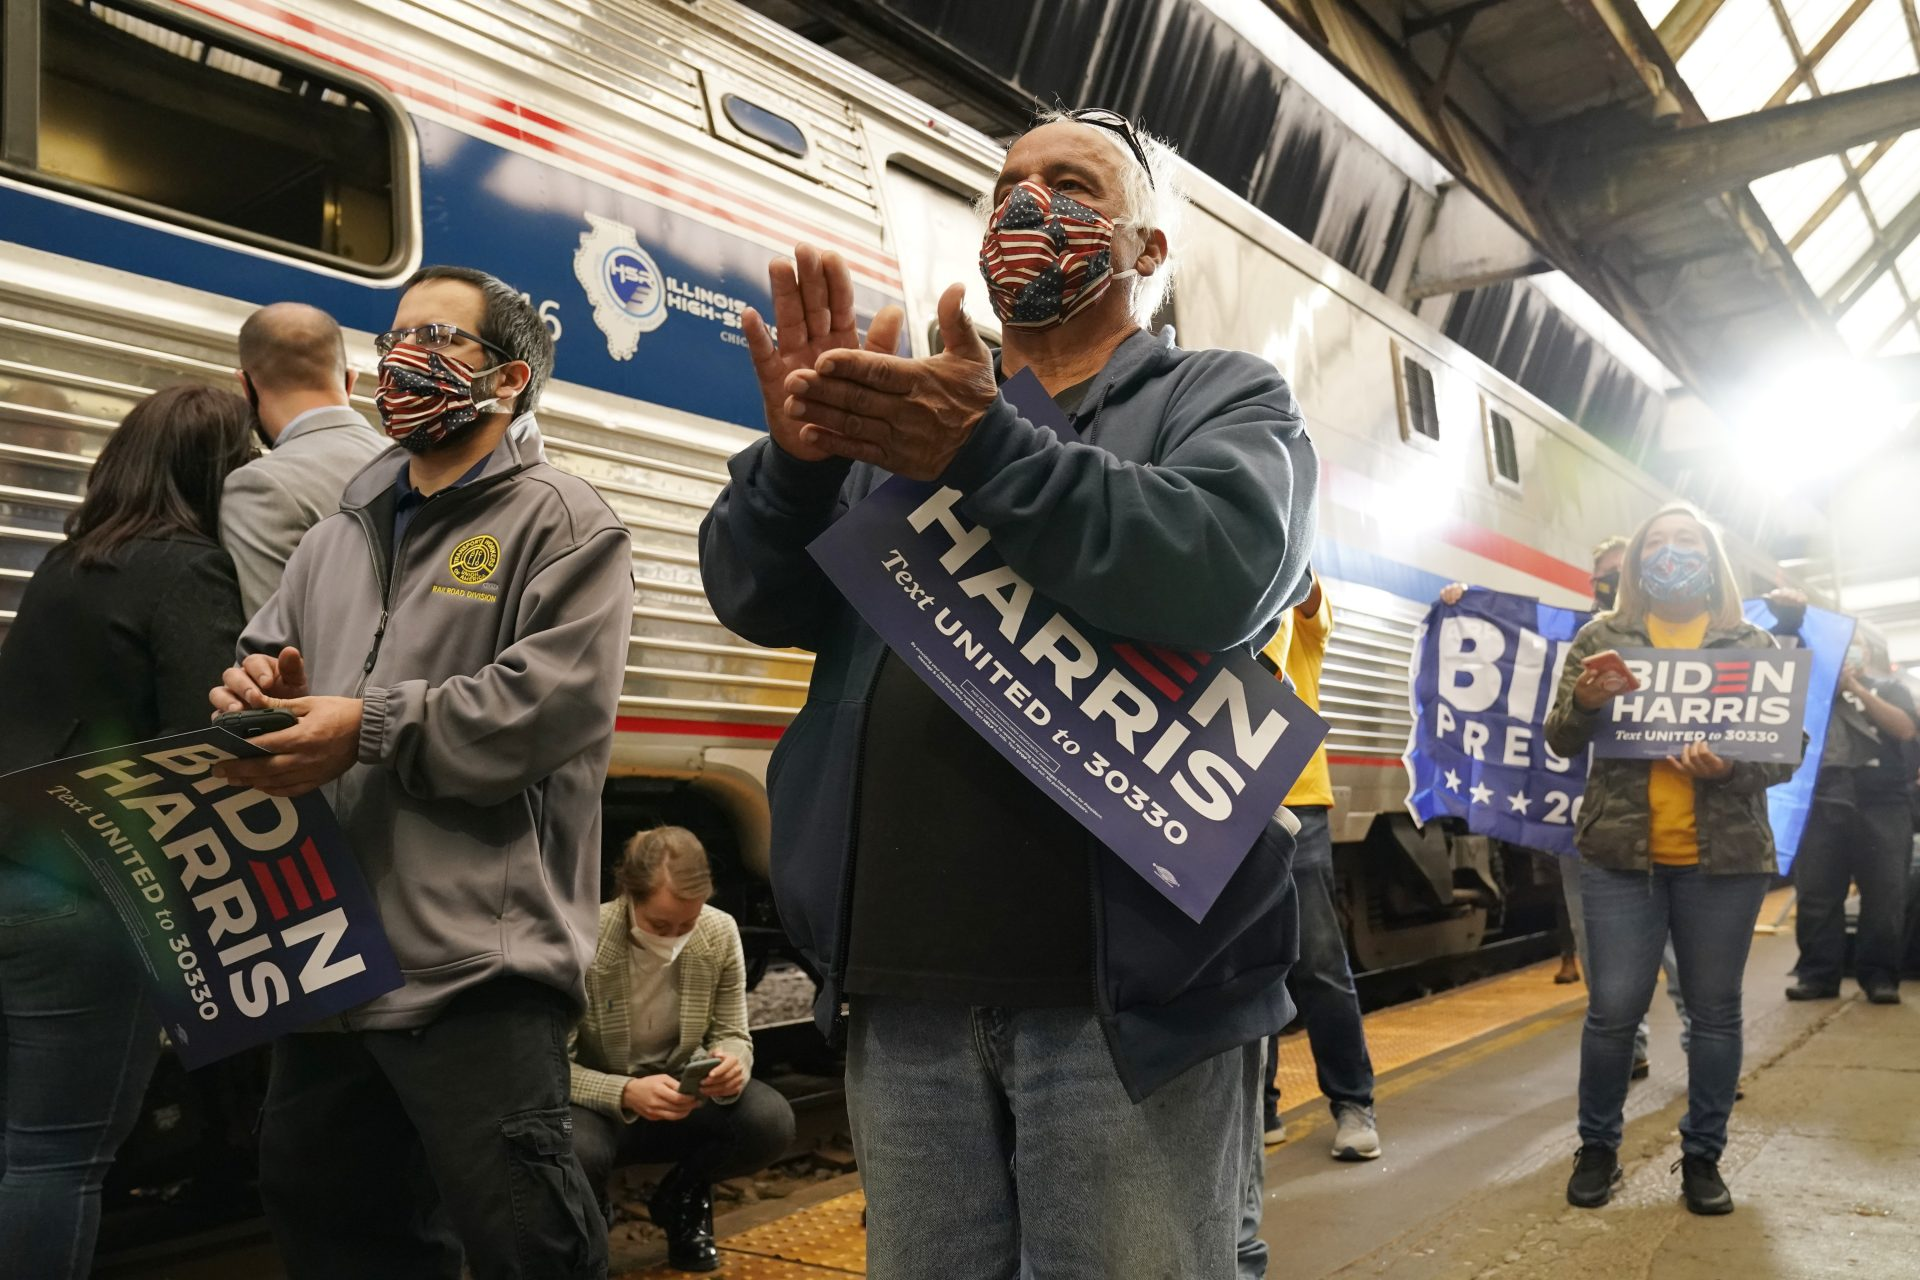 Supporters applaud as Democratic presidential candidate former Vice President Joe Biden speaks at Amtrak's Pittsburgh Train Station, Wednesday, Sept. 30, 2020, in Pittsburgh. Biden is on a train tour through Ohio and Pennsylvania today.